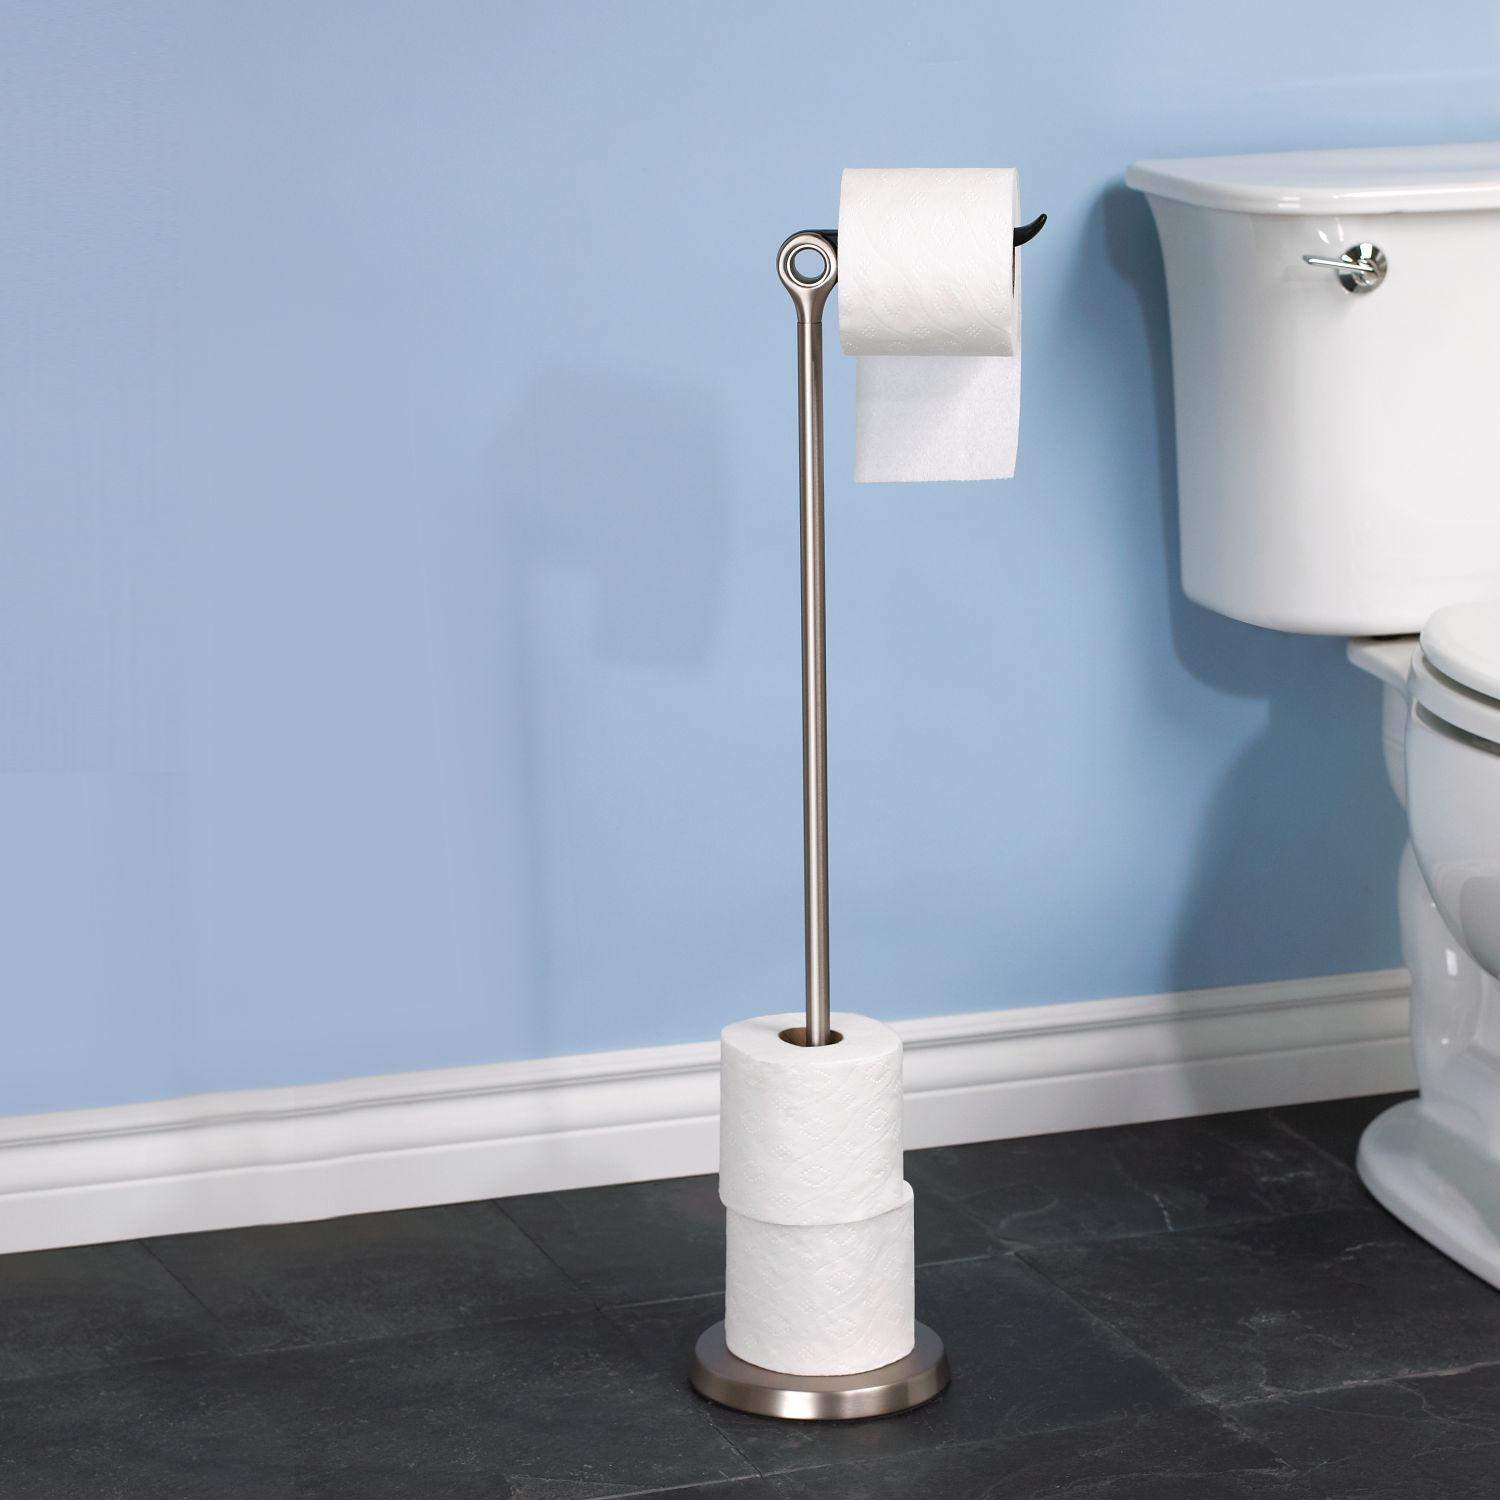 Diy Toilet Paper Holder Stand Diydry